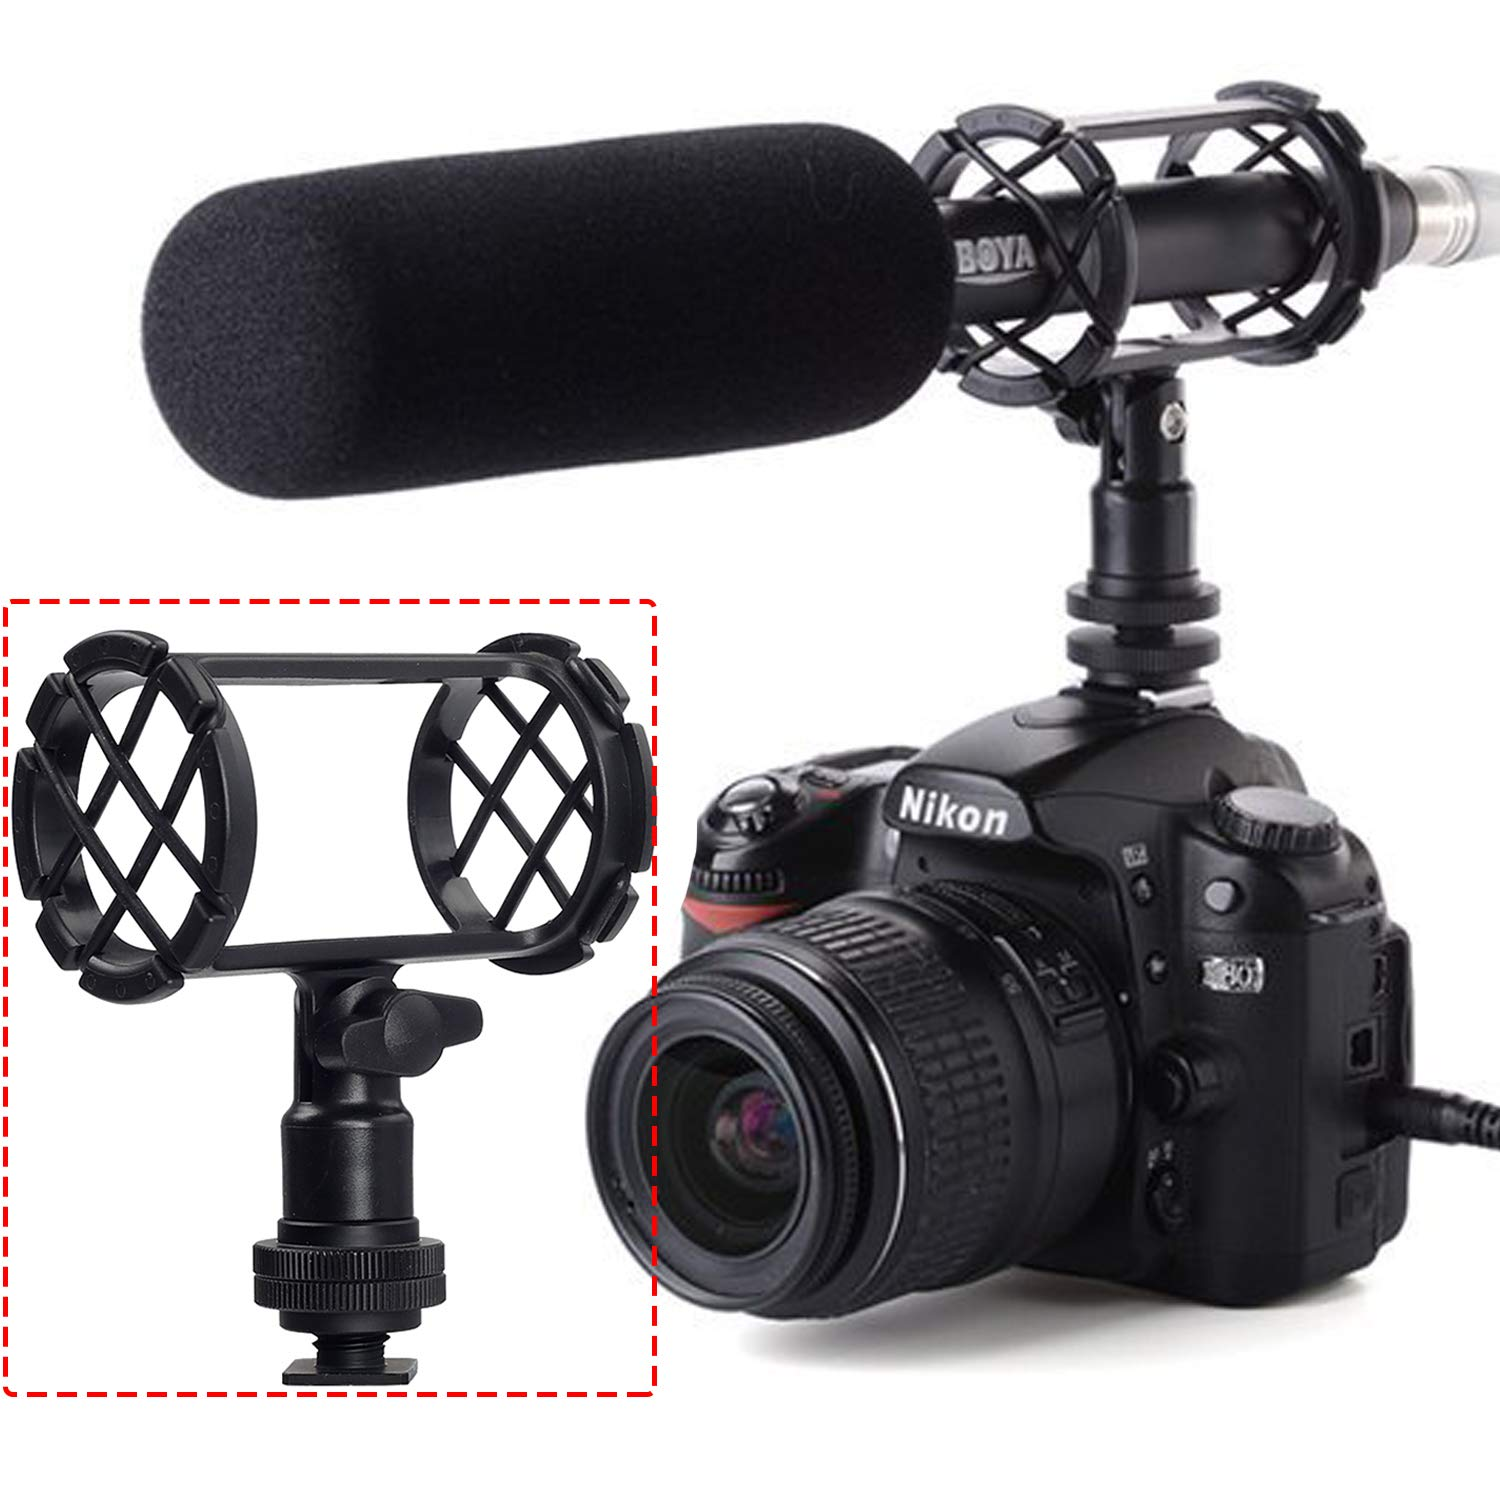 Boya BY-C04 Camera Microphone Shockmount with Hot Shoe Mount for AKG D230 Senheisser ME66 Rode NTG-2 NTG-1 Audio-Technica AT-875R